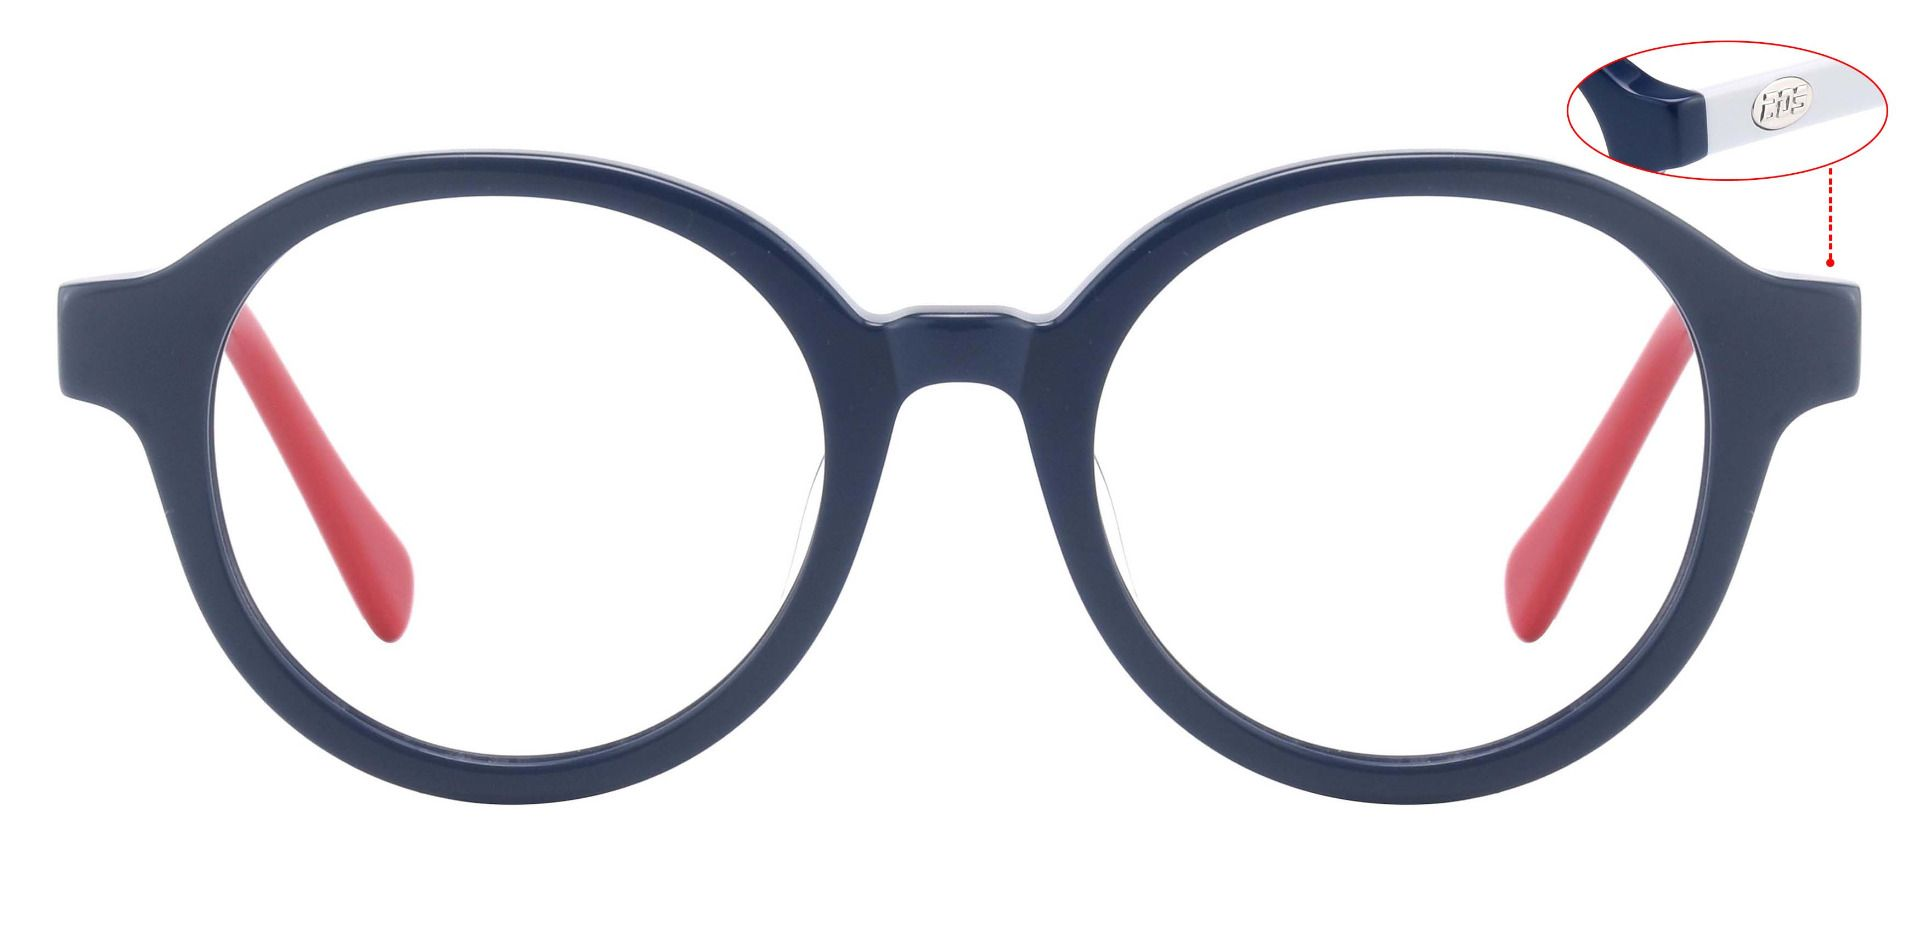 Roxbury Round Eyeglasses Frame - The Frame Is Blue And Red